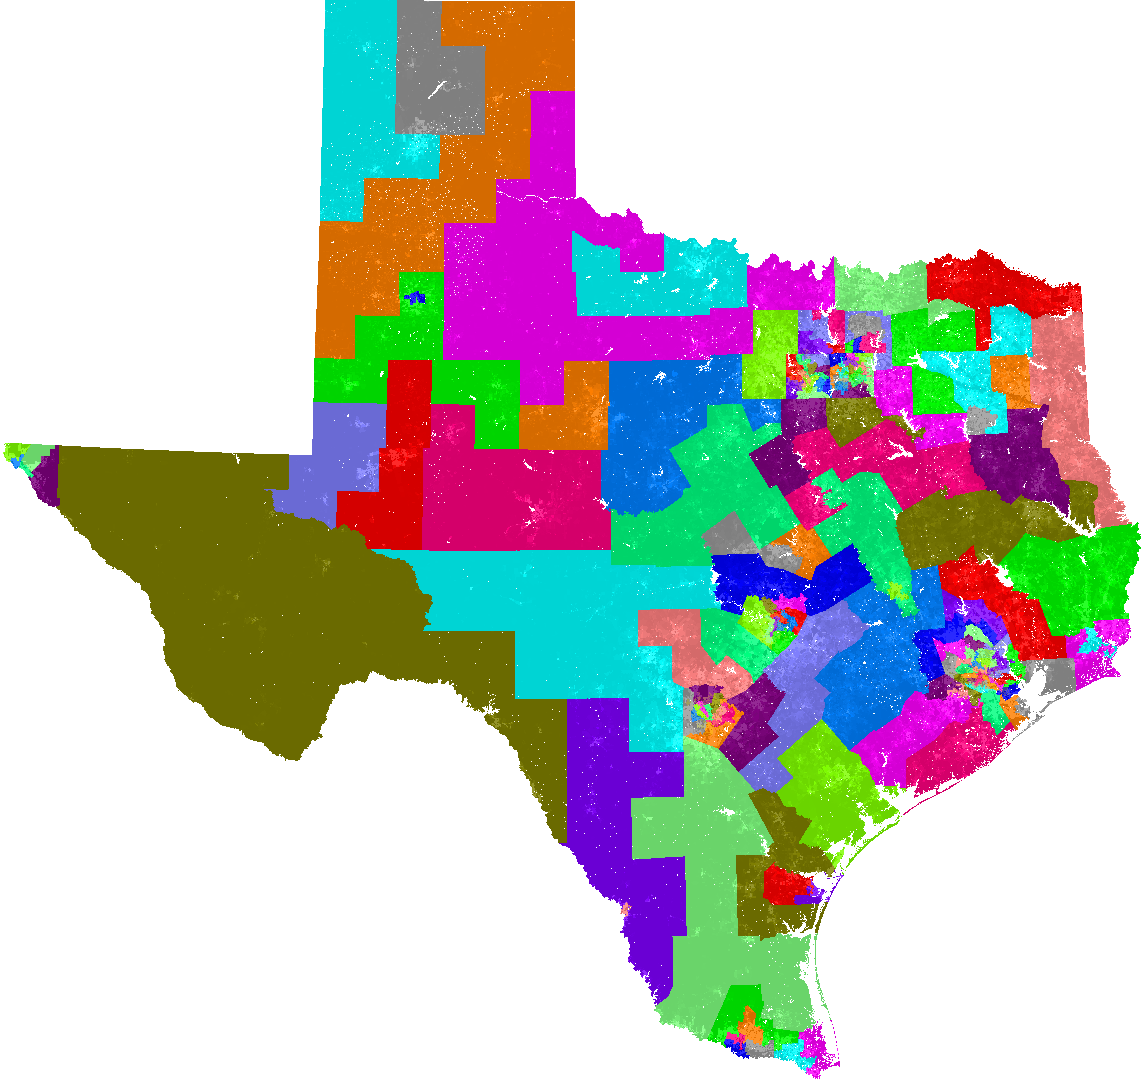 Texas House of Representatives Redistricting